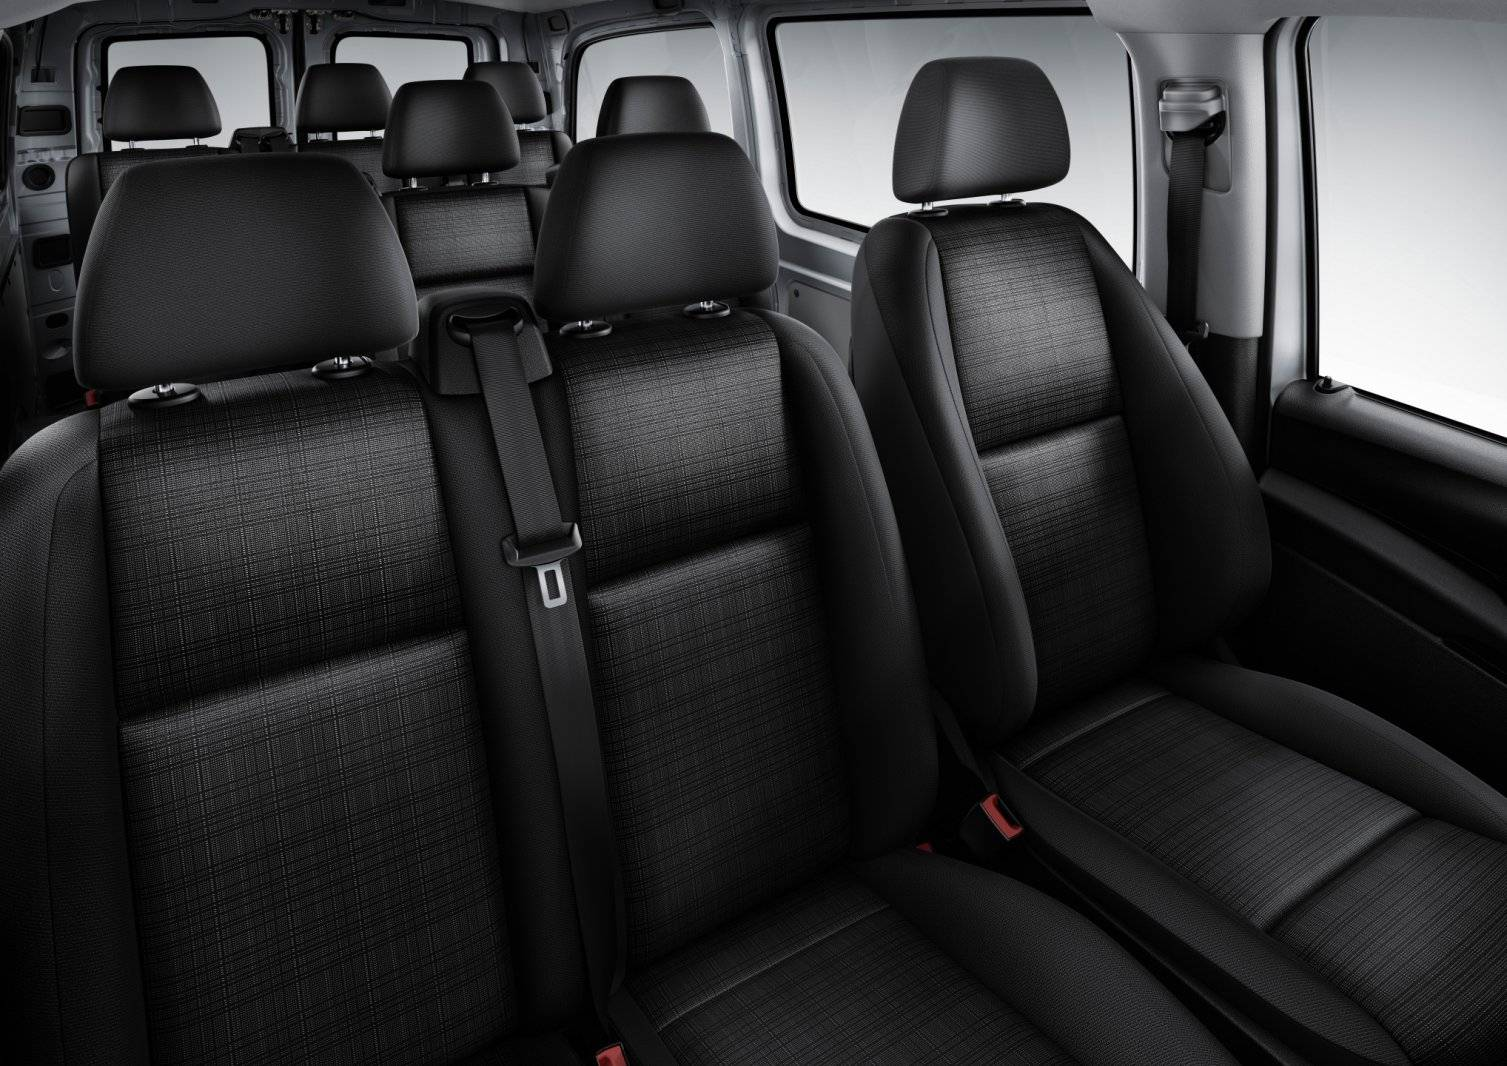 de nieuwe mercedes benz vito 9 persoons peoplemover autonieuws. Black Bedroom Furniture Sets. Home Design Ideas